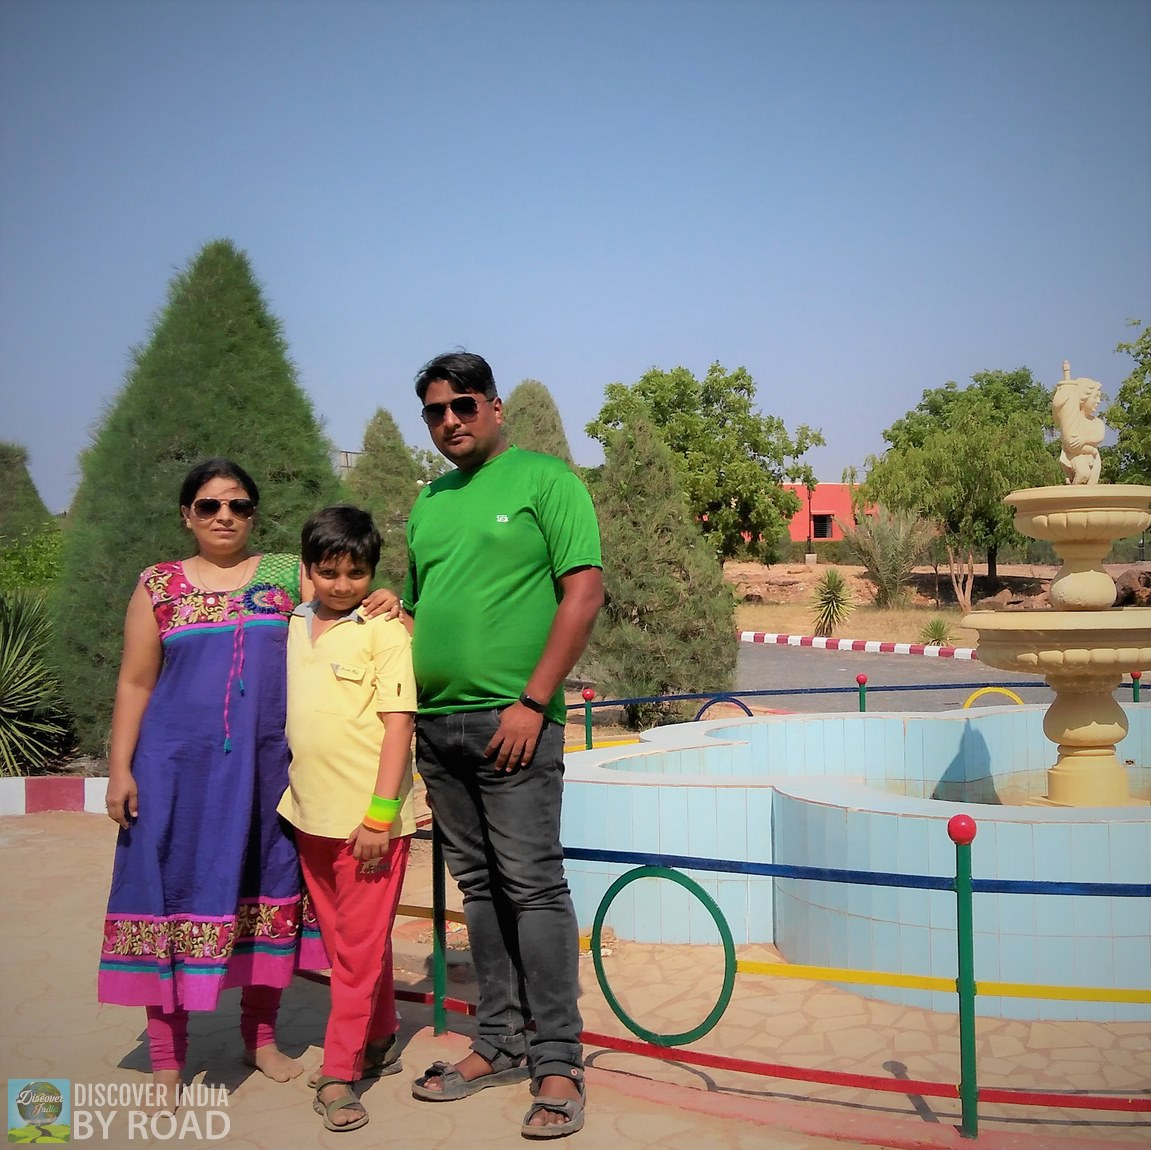 Our family Photo at hill garden bhuj